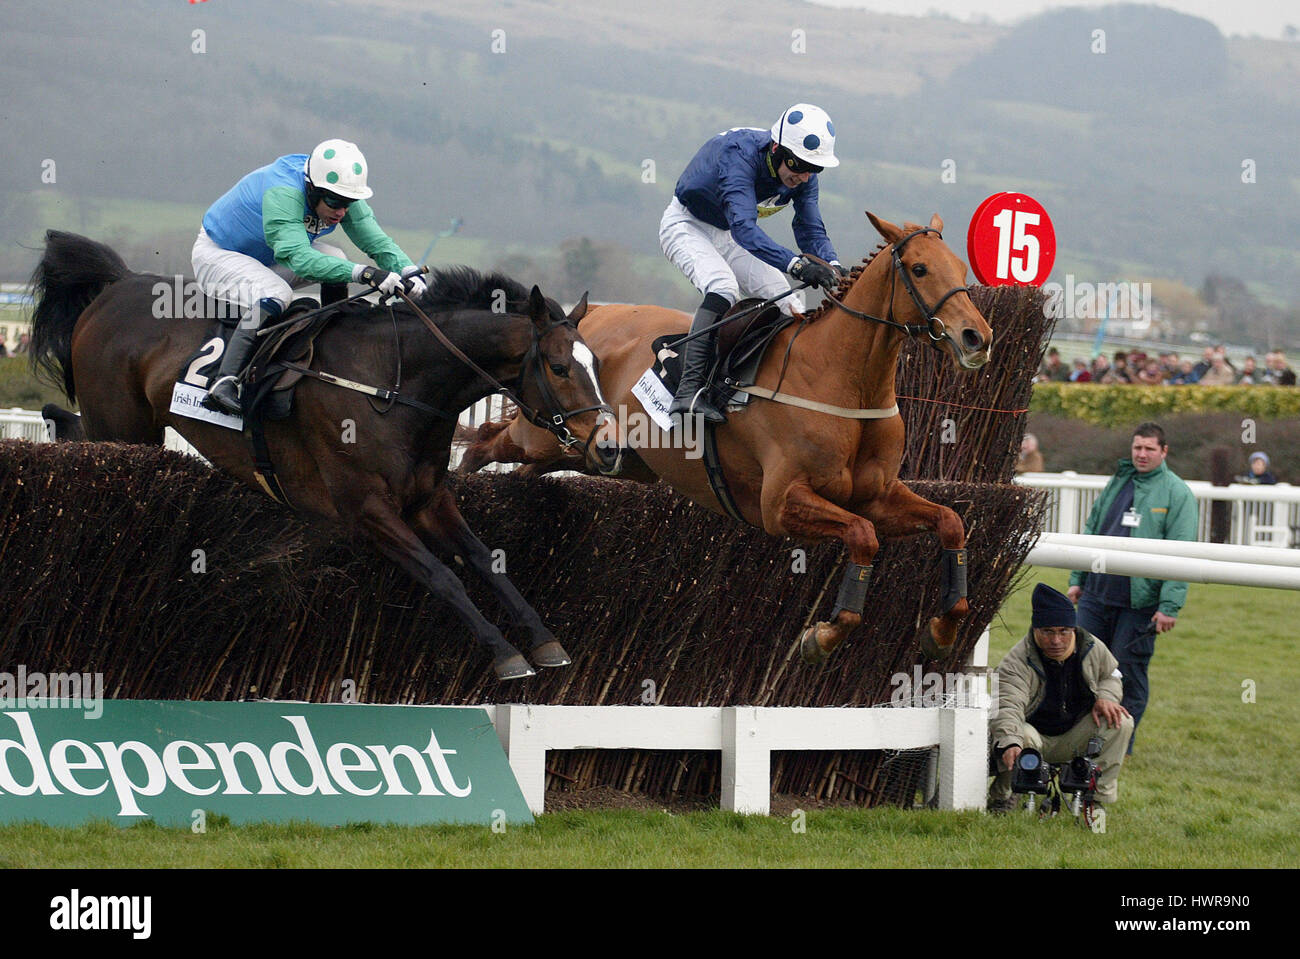 WINNER CONTRABAND ASHLEY BROOK ARKLE CHALLENGE TROPHY CHELTENHAM RACECOURSE CHELTENHAM 15 March 2005 - Stock Image